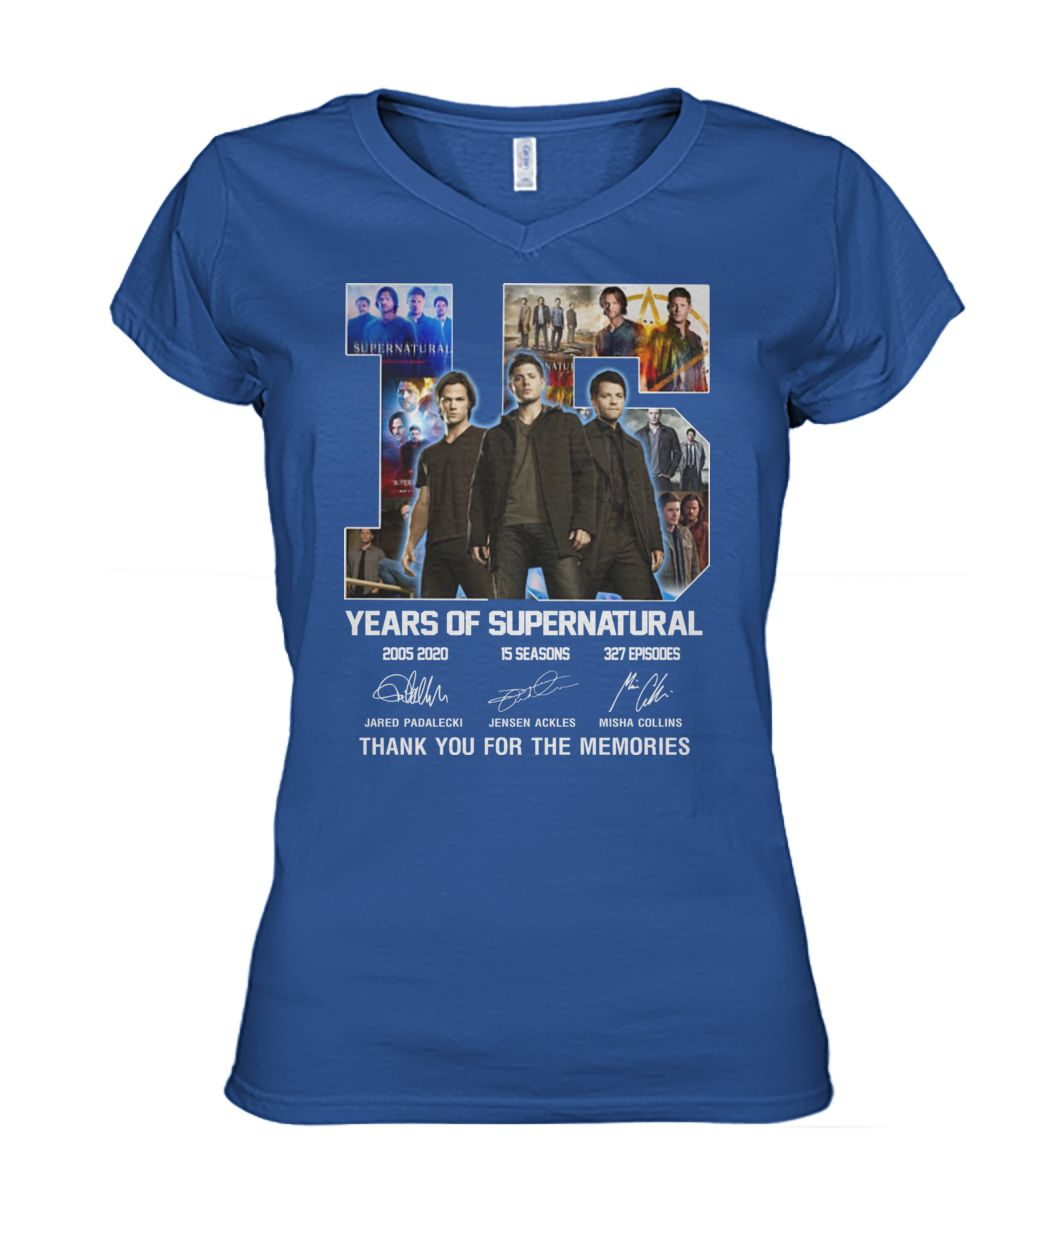 [Hot version] 15 year of supernatural thank you for the memories shirt